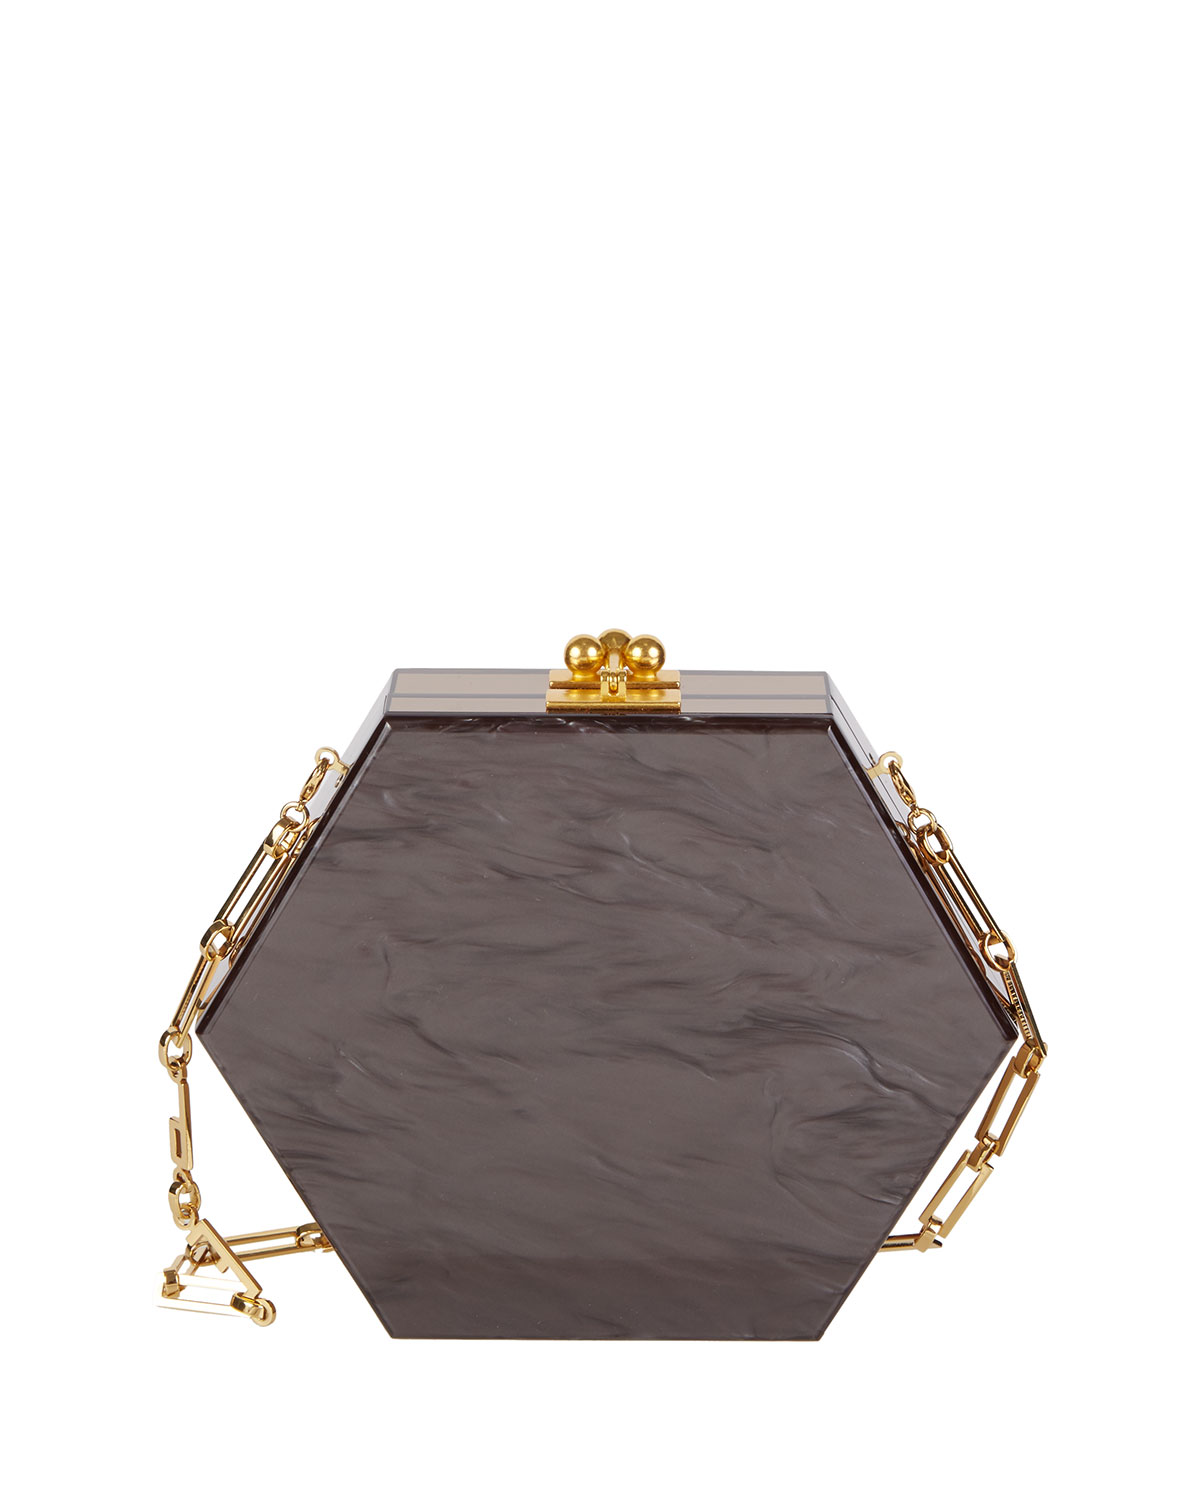 Macy Ribbon Acrylic Clutch - Red Edie Parker Outlet For Cheap Online Store uNZl86eQNN